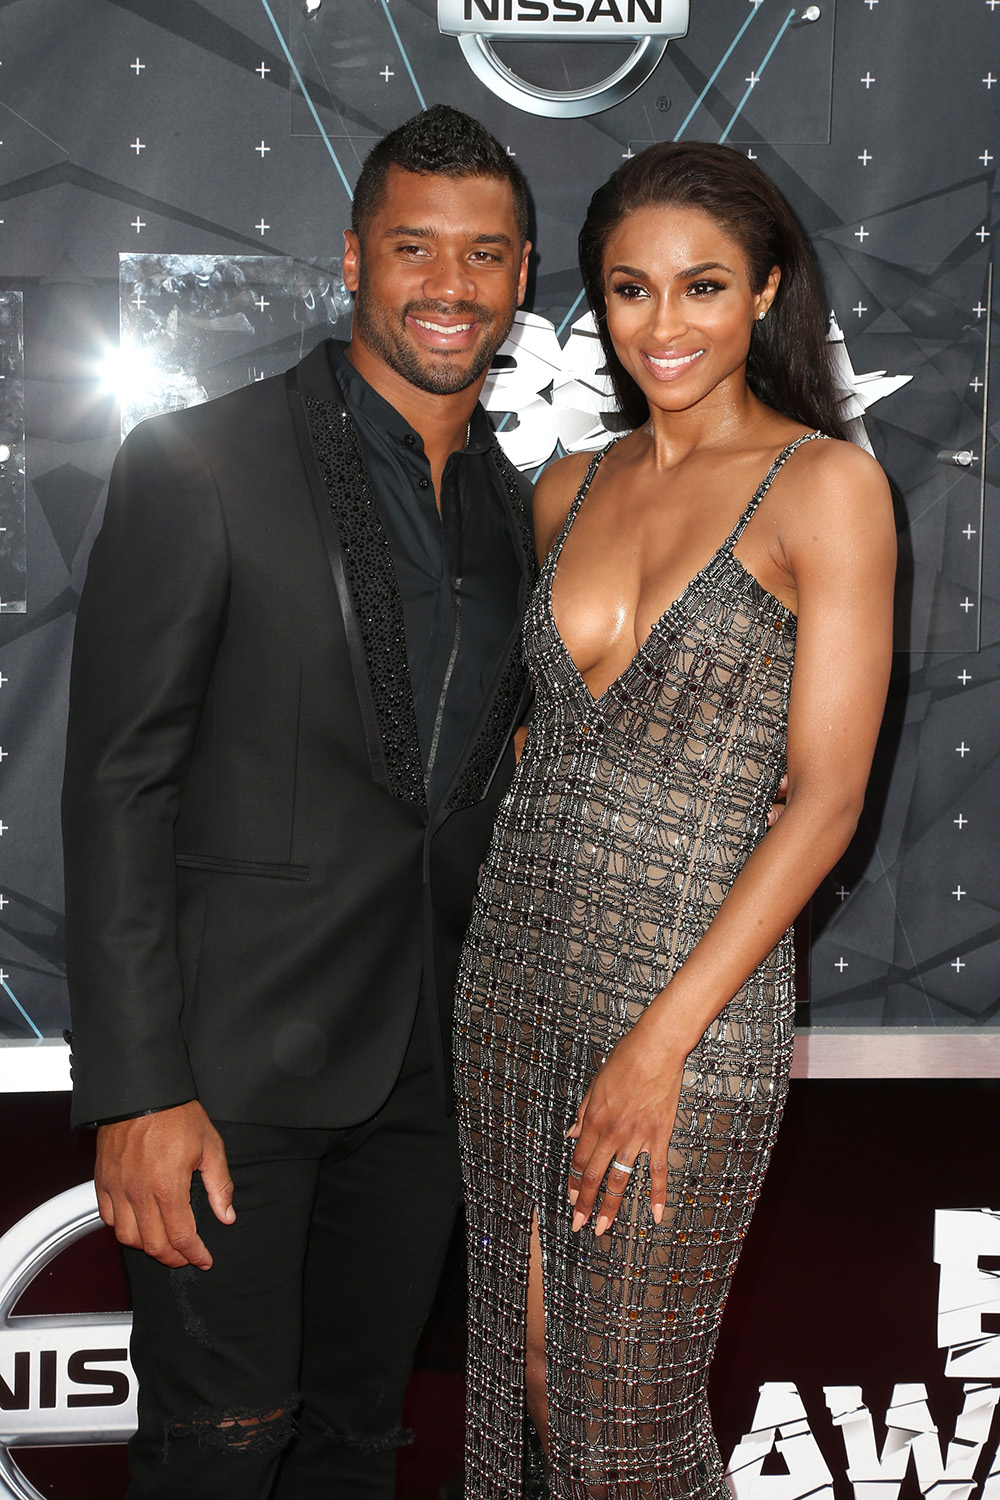 Russell dating ciara